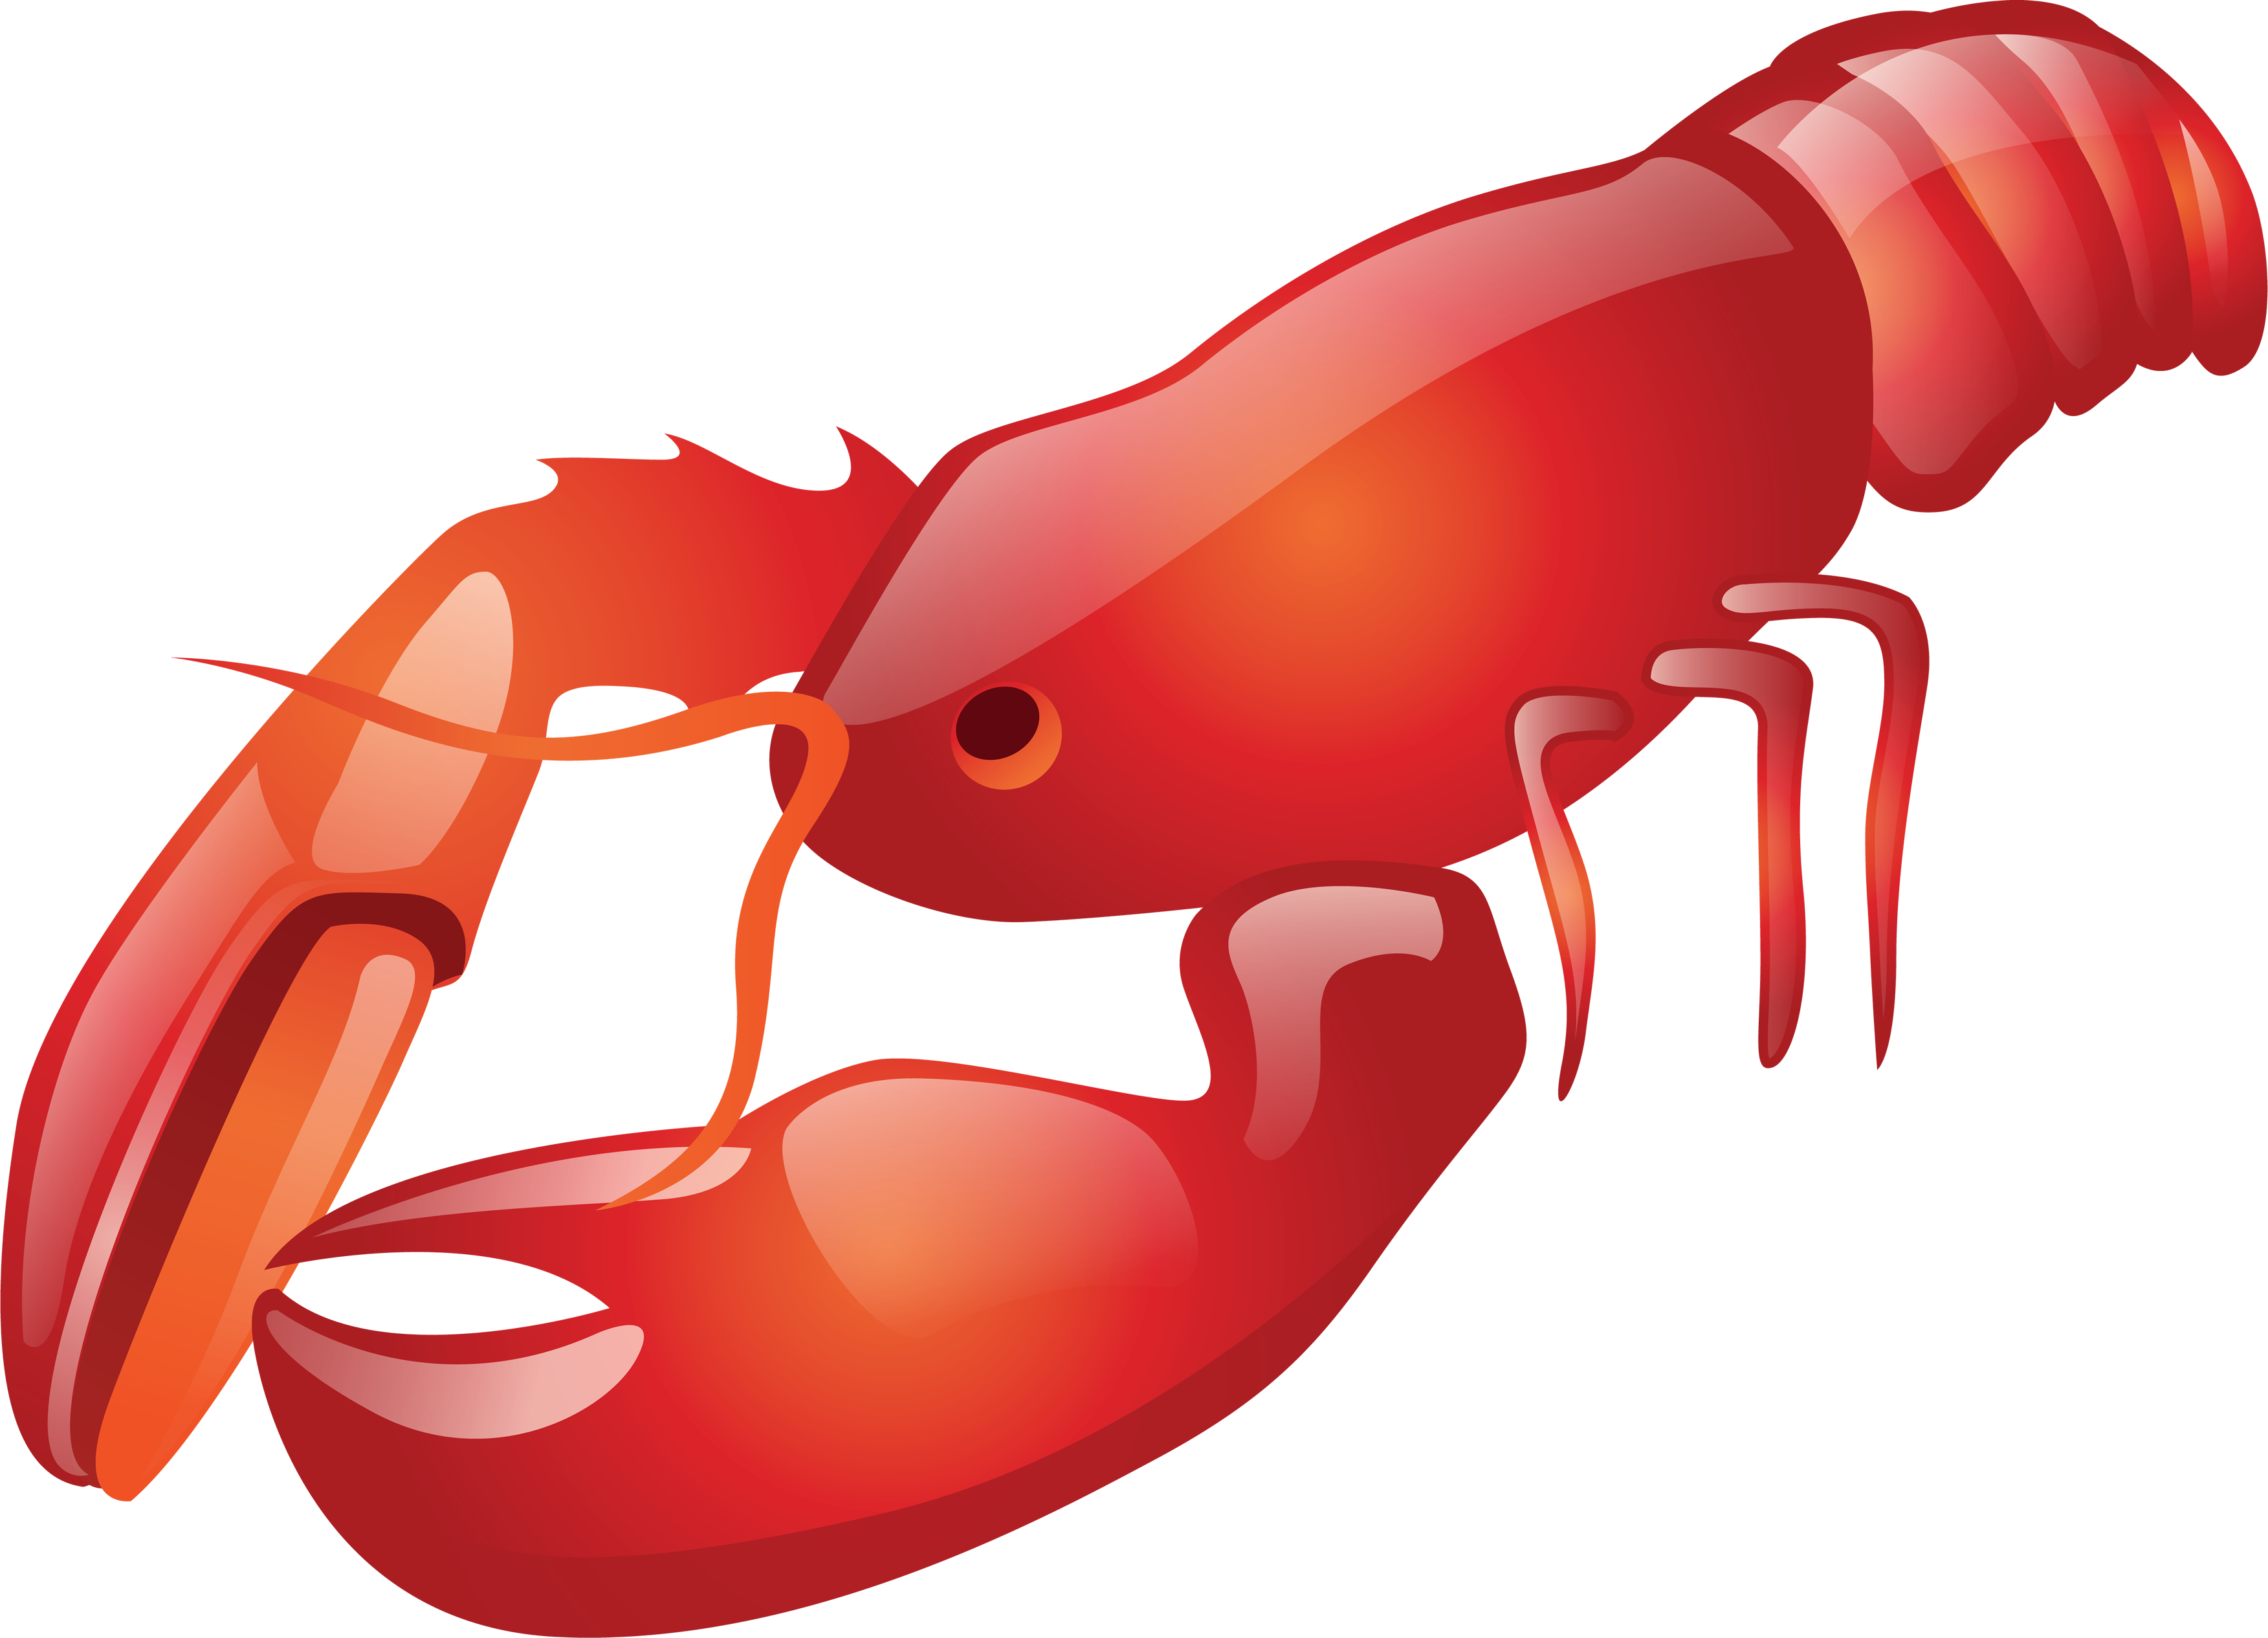 Lobster clipart kiaavto